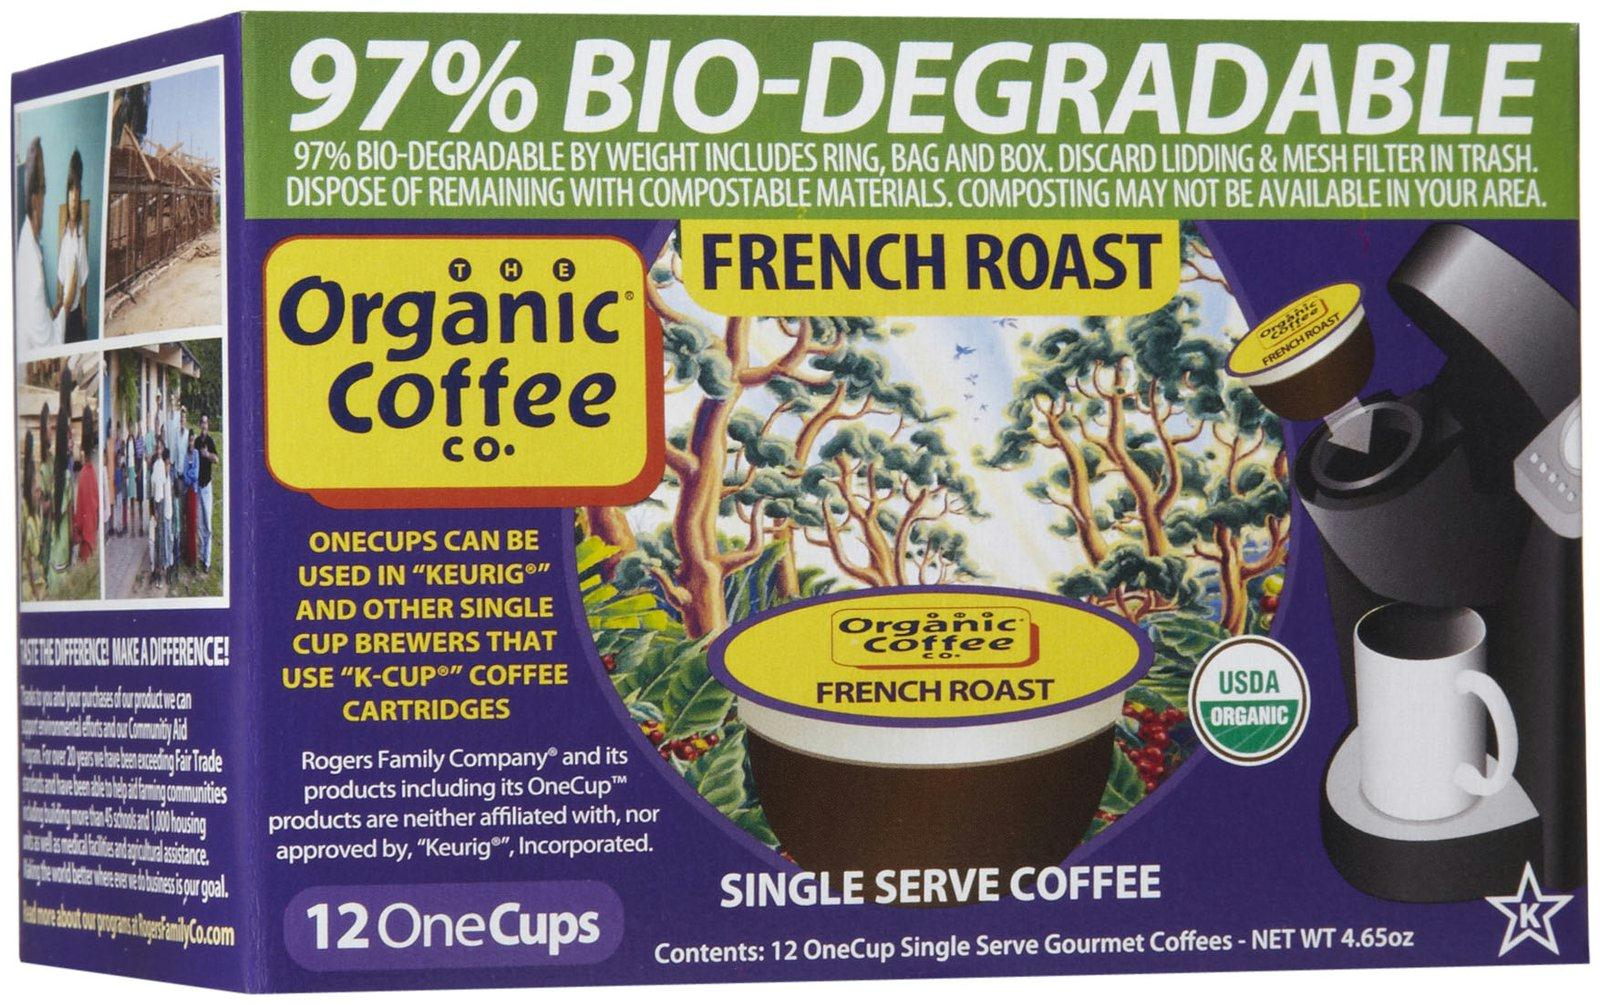 Organic Coffee Co.: One Cup Organic French Roast Coffee, 12 One Cups